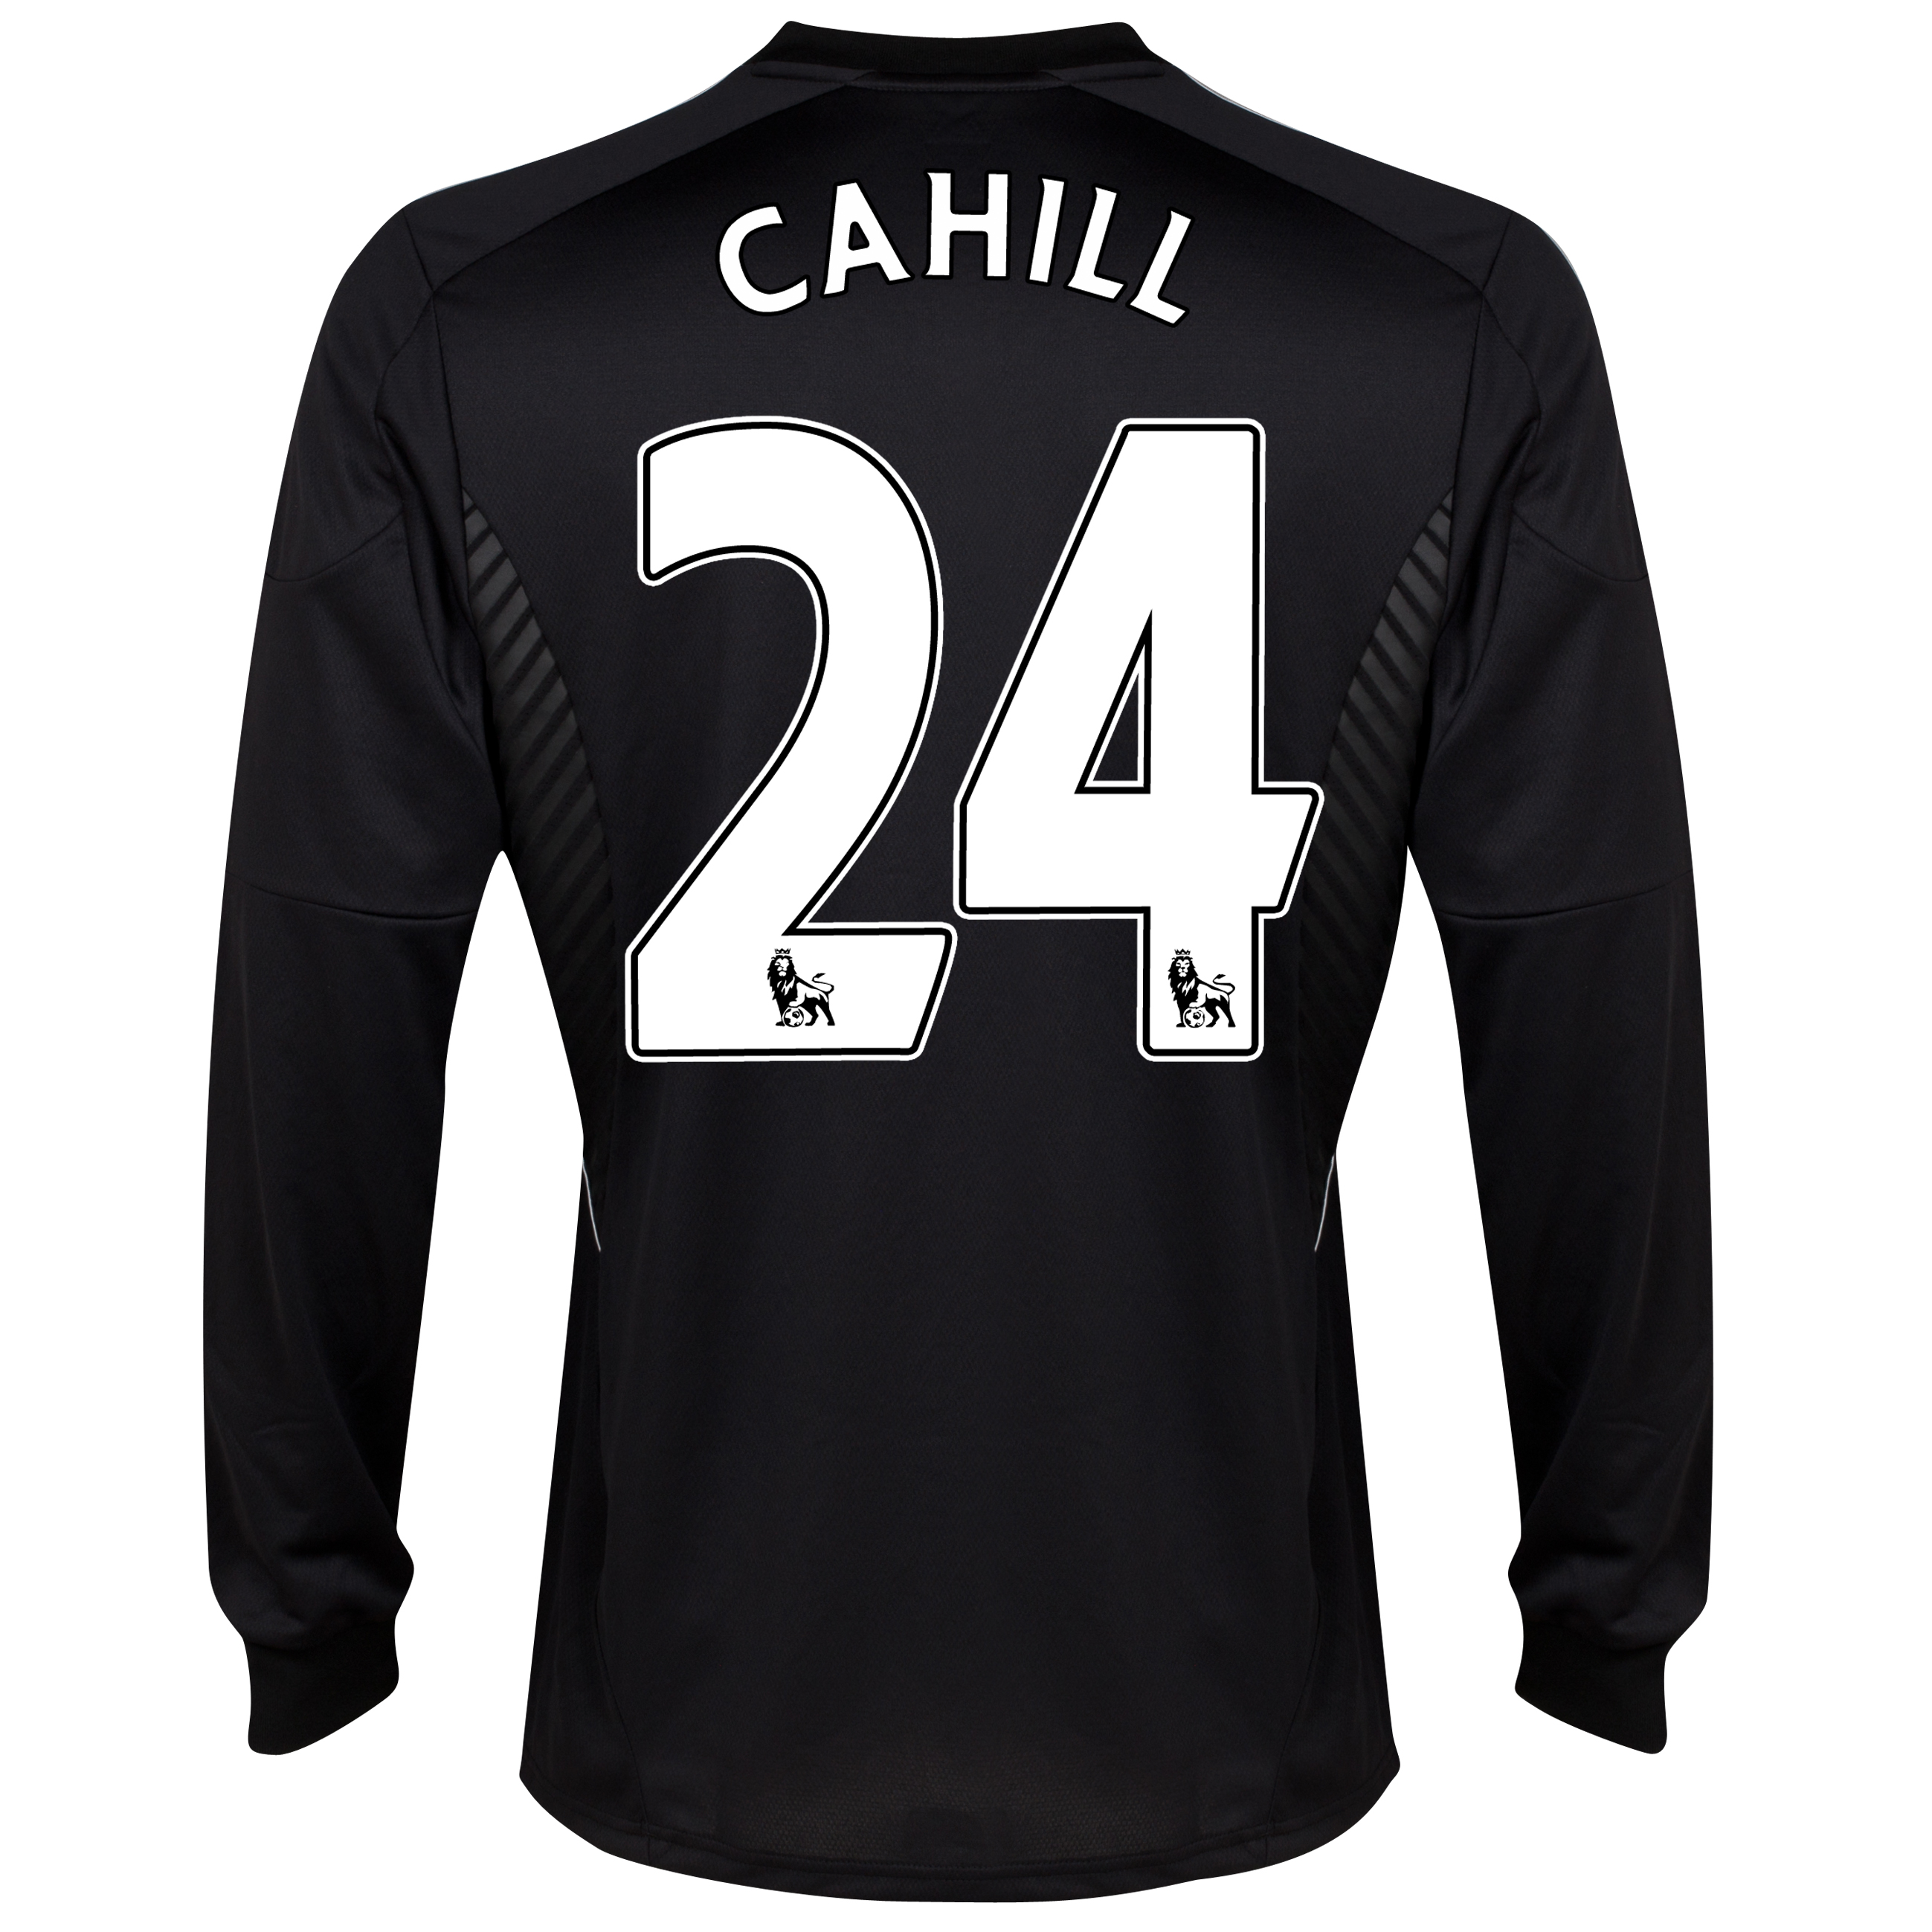 Chelsea Third Shirt 2013/14 -Long Sleeve - kids with Cahill 24 printing